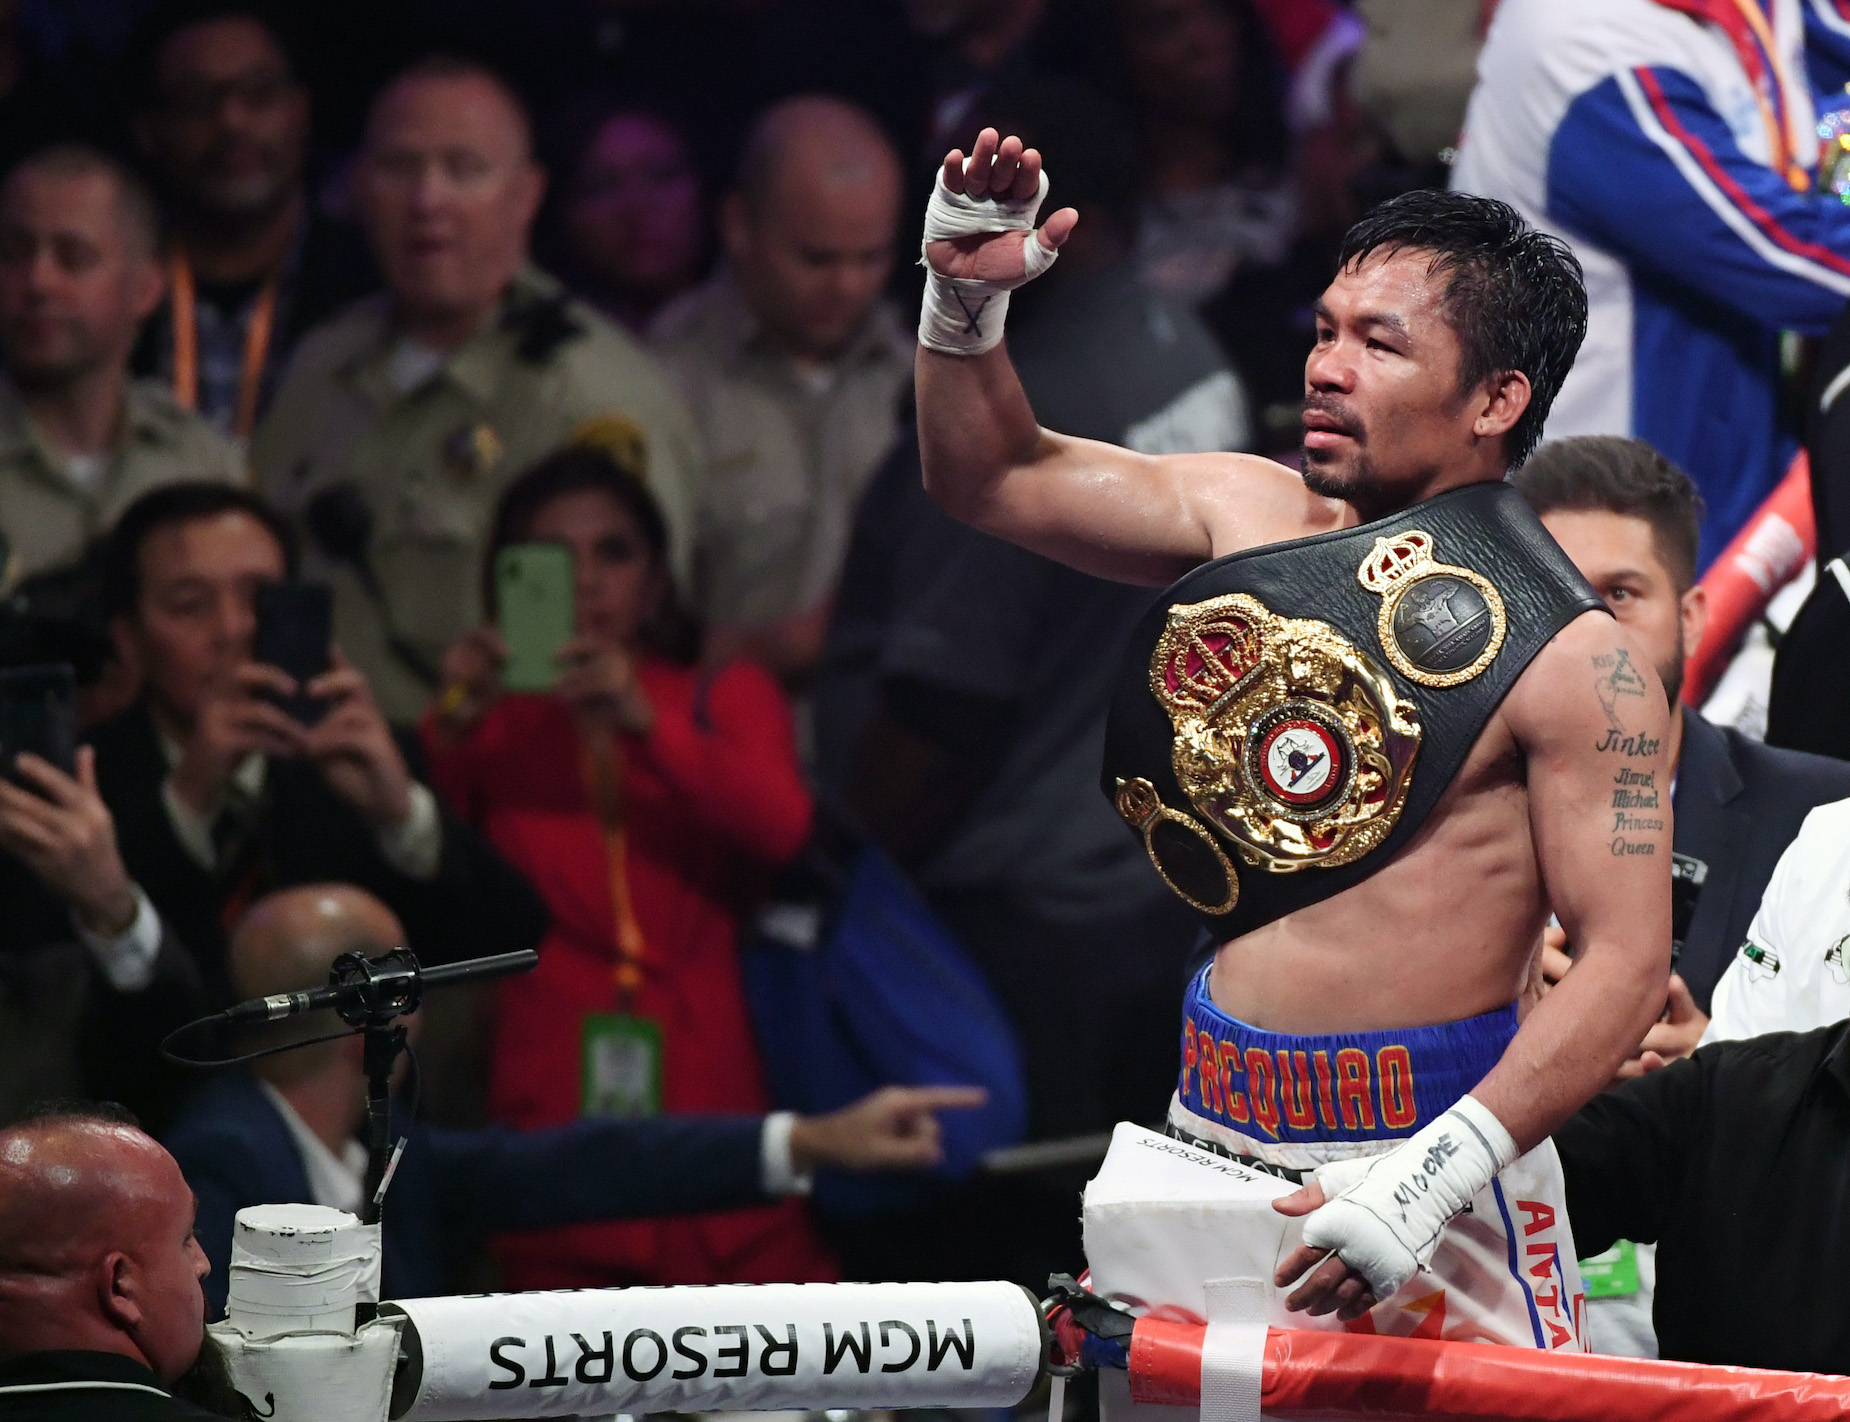 While Manny Pacquiao has a massive net worth, he could add an extra $40 million to his bottom line if things go according to plan.